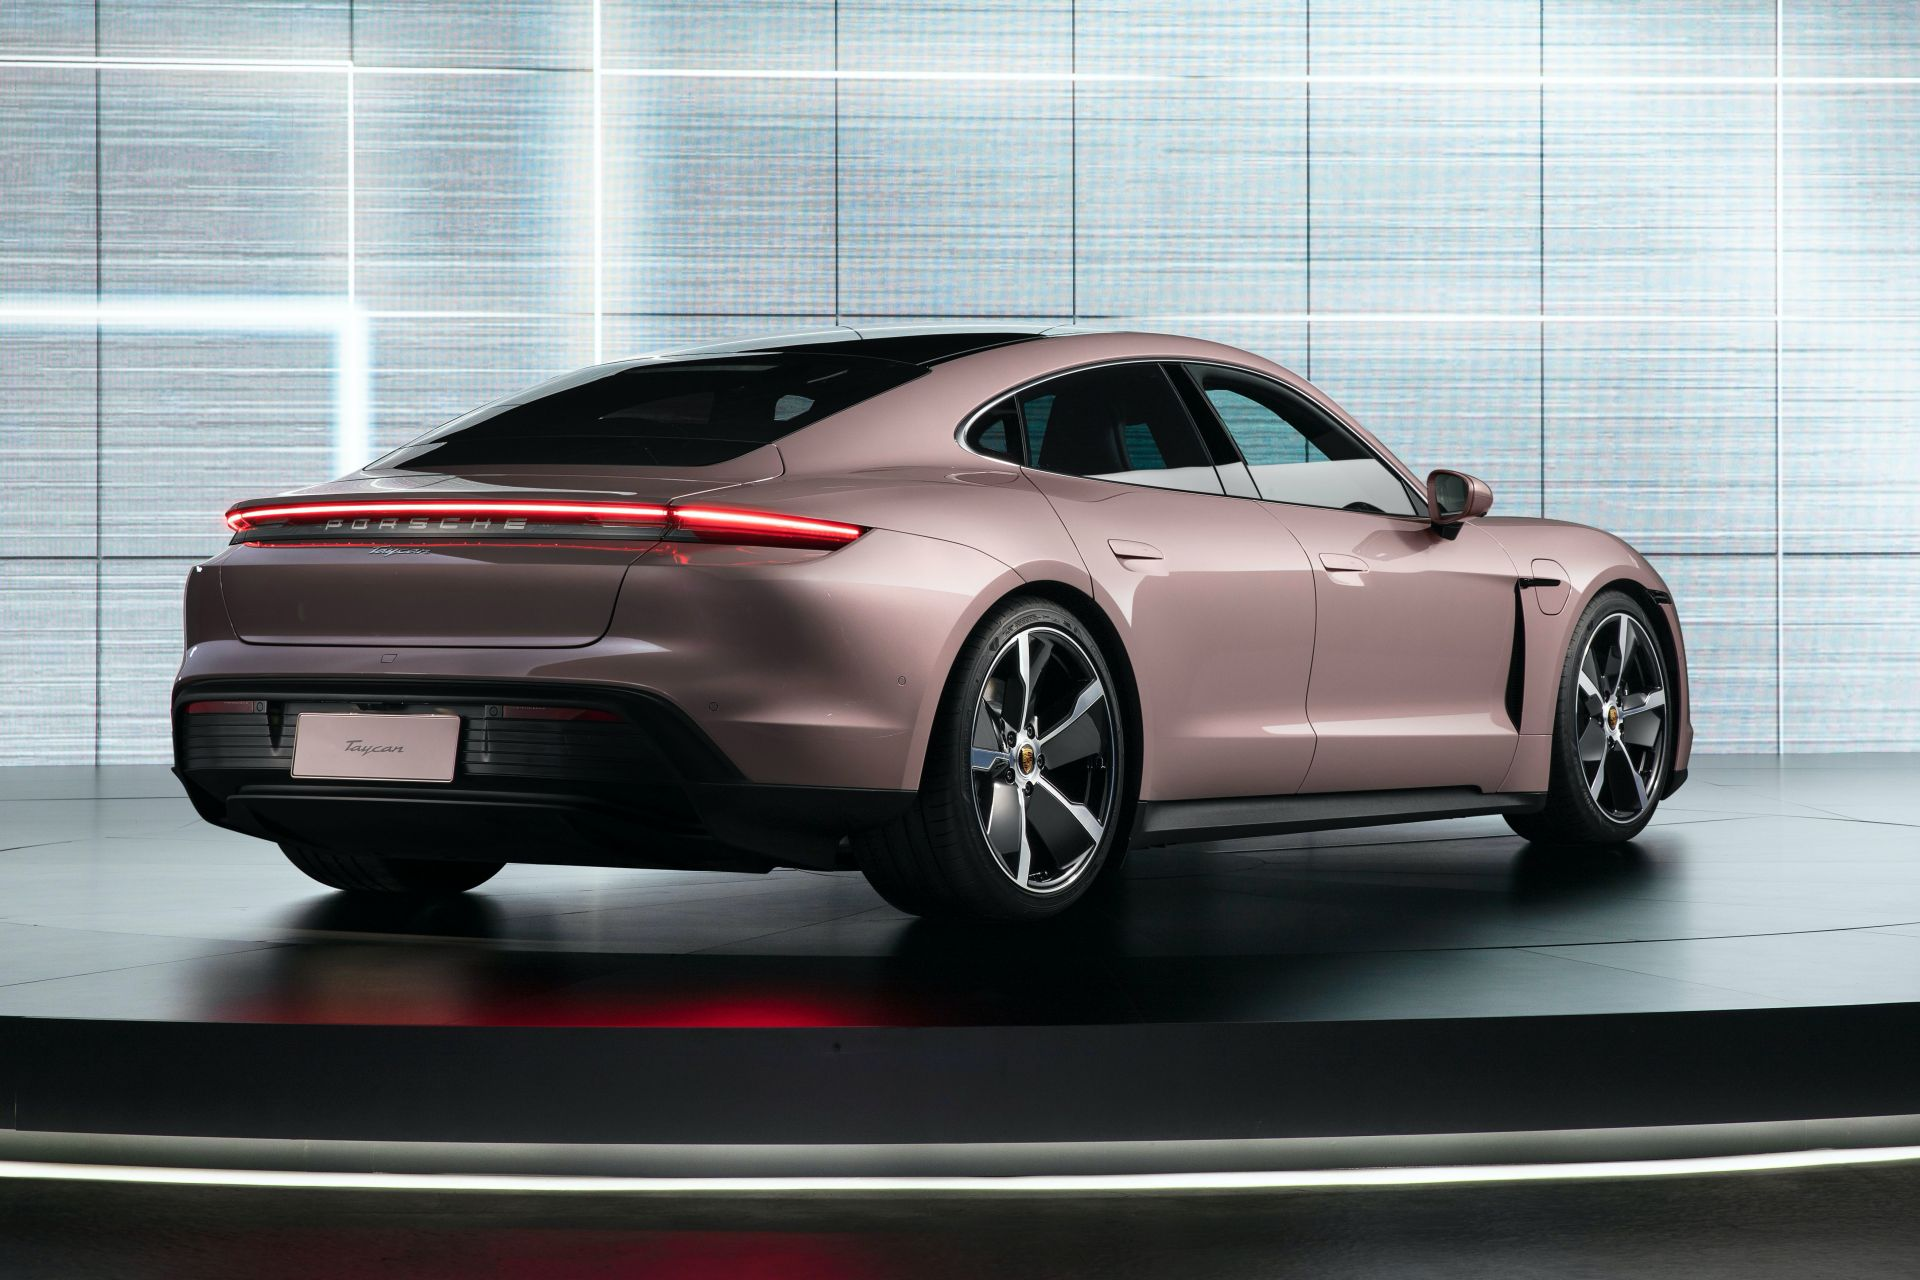 More affordable rear-wheel-drive Porsche Taycan lands in China